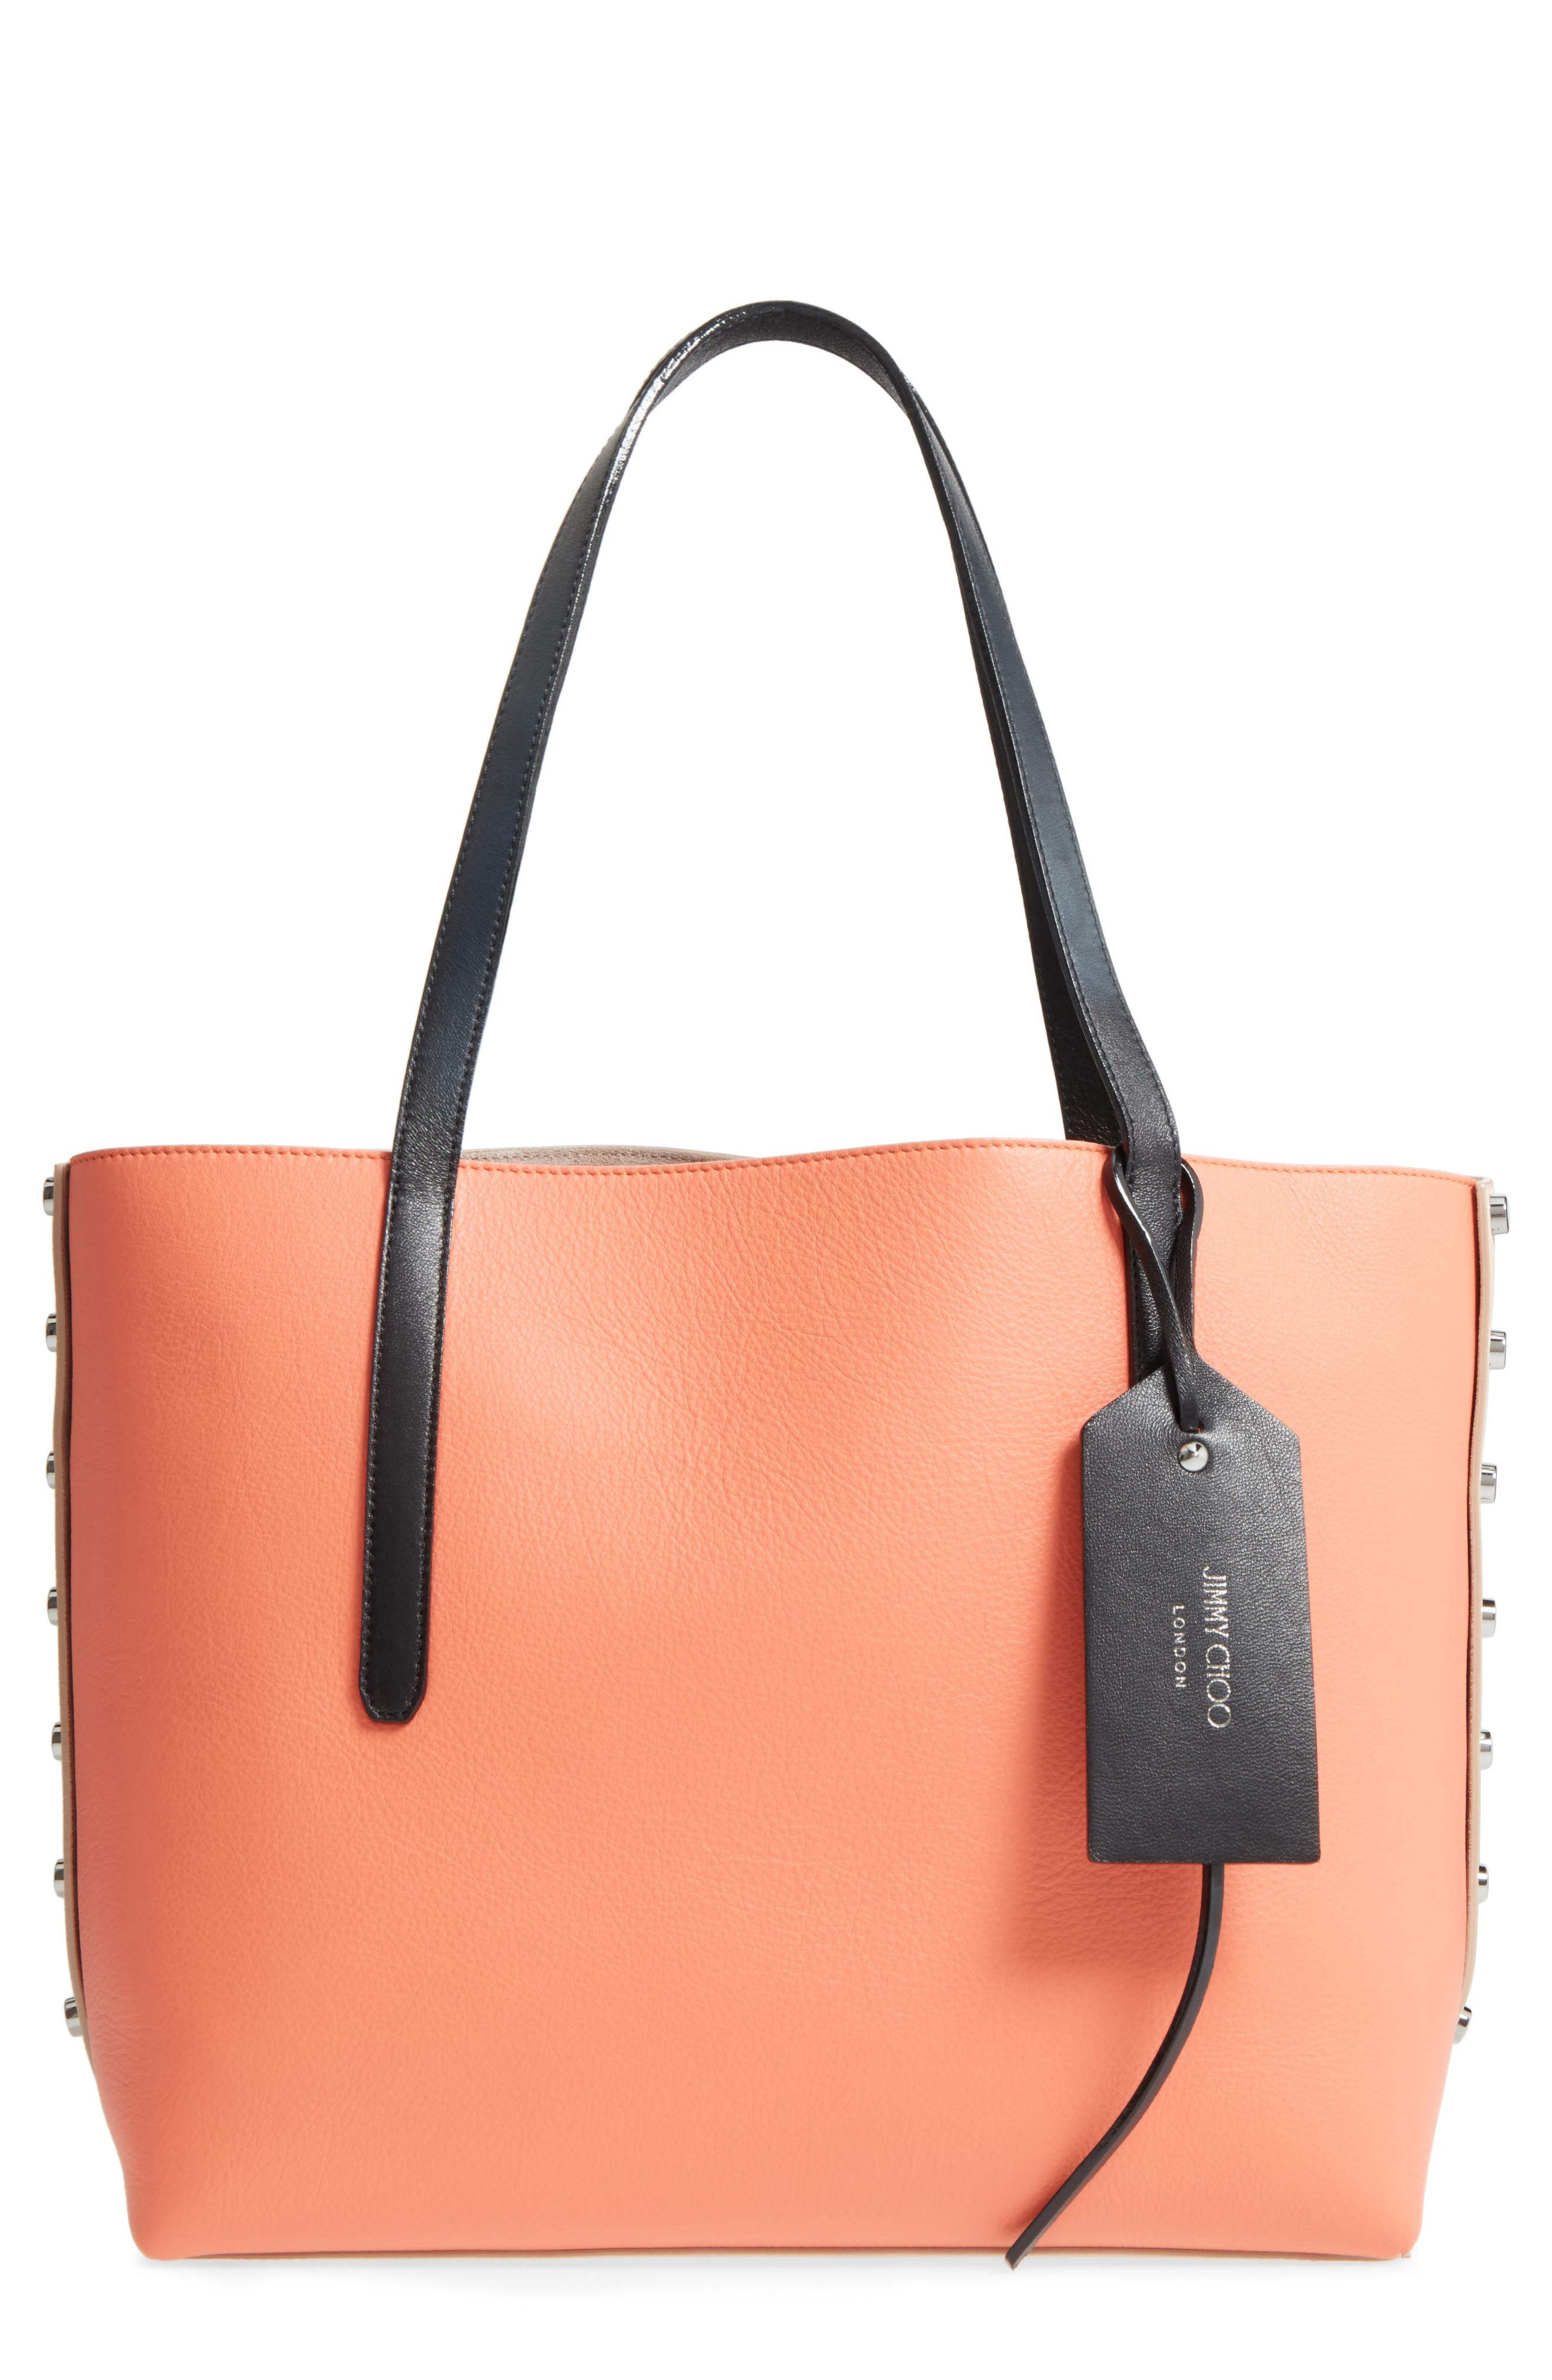 Alternate Image 1 Selected - Jimmy Choo Twist Leather Tote